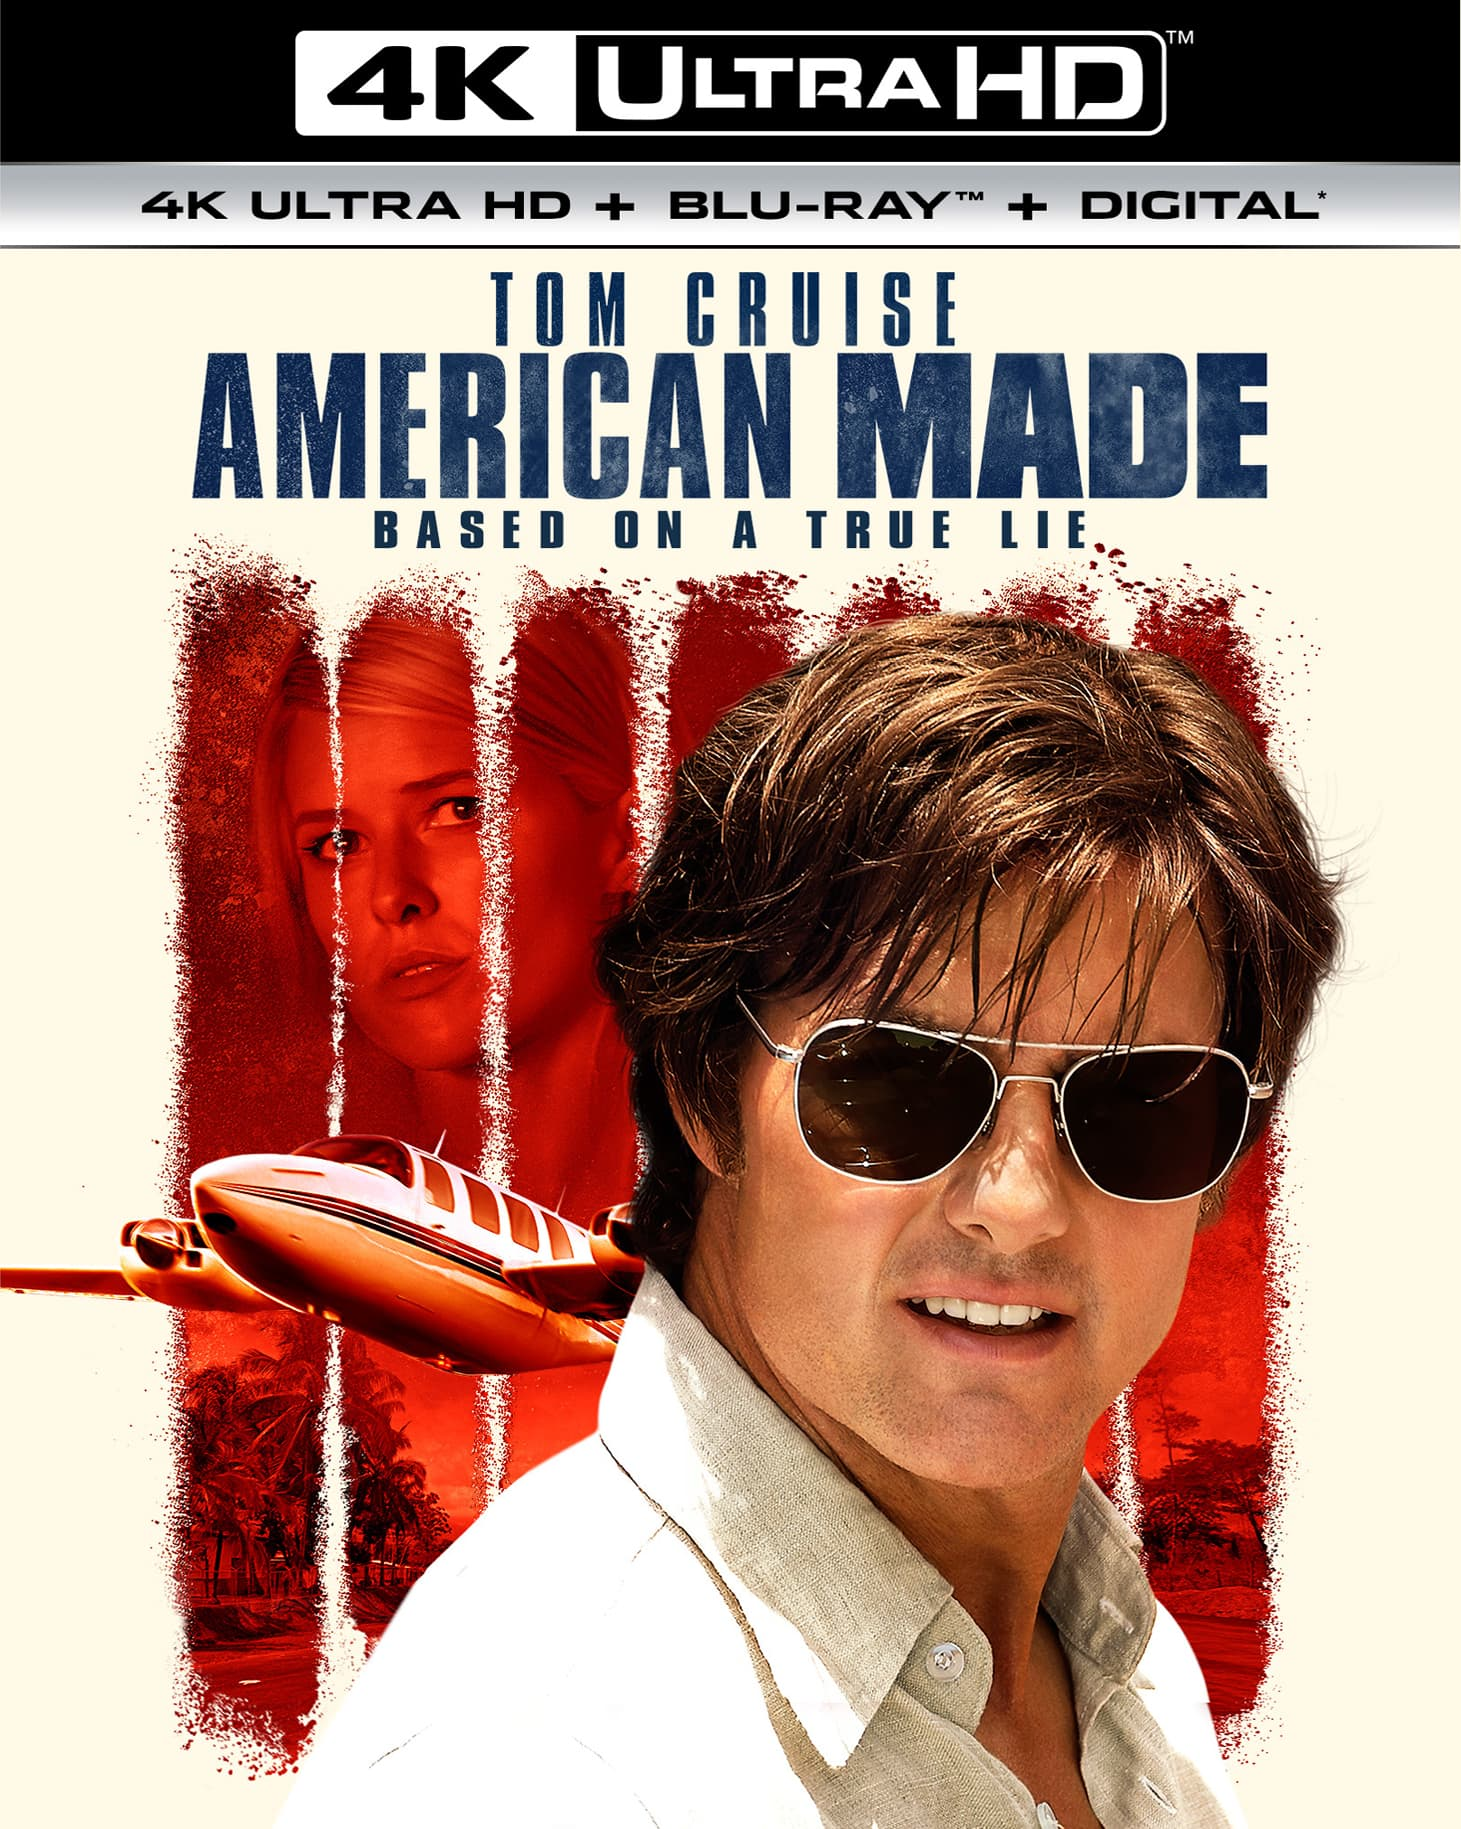 American Made (4K UHD + Blu-ray + Digital)